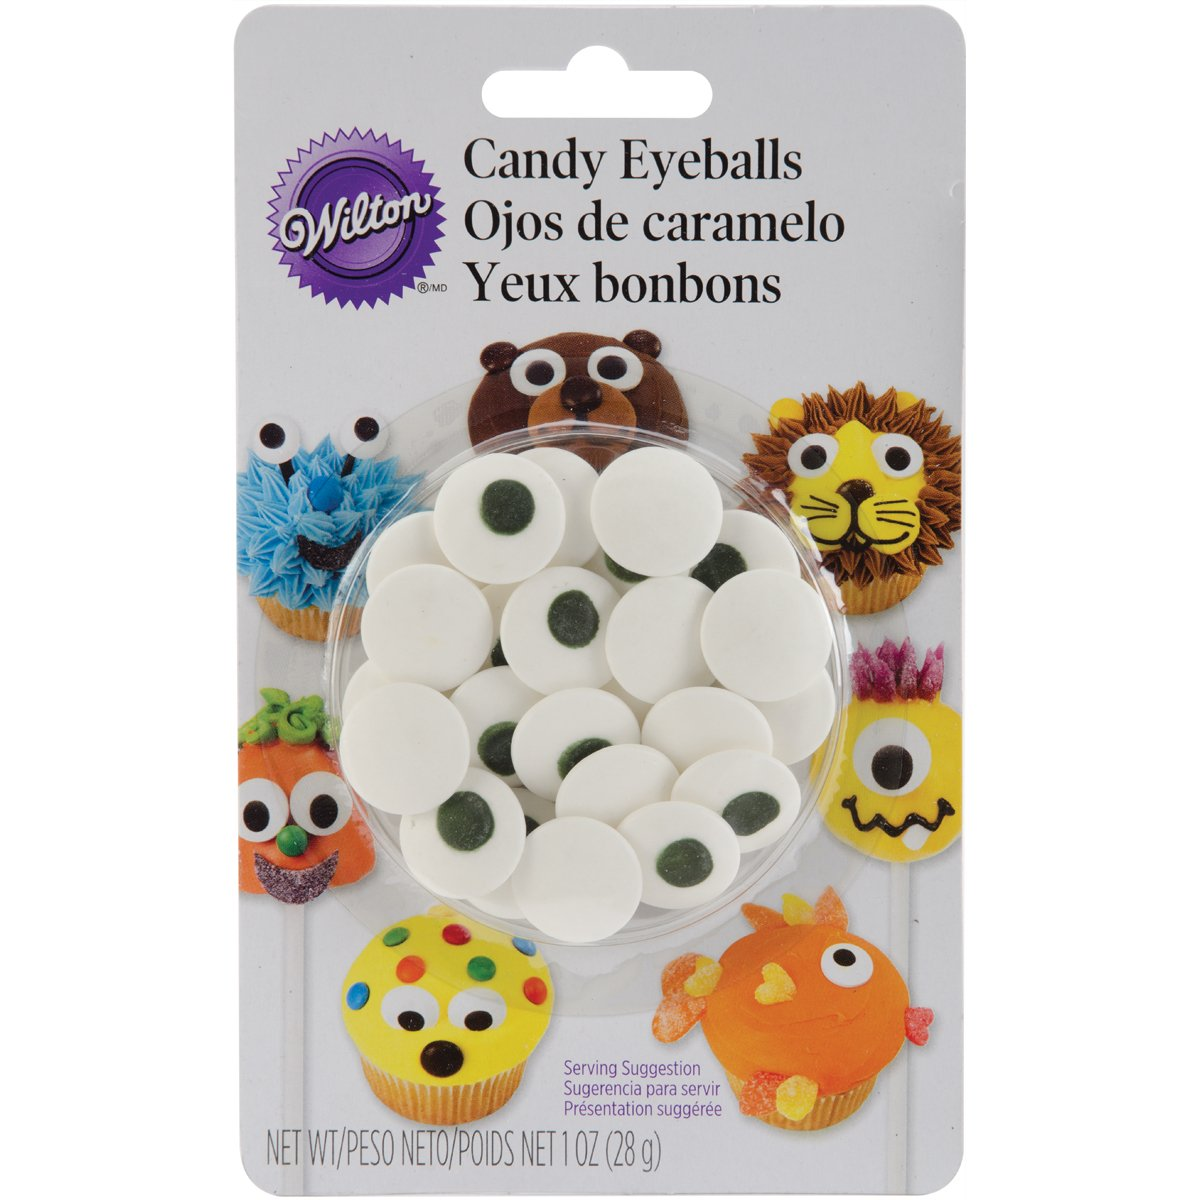 Wilton Candy Eyeballs, Great for Children's Birthday Cakes, and Cupcakes, Make that Dessert or Treat Look Back with Candy Eyes, Large, 1-Ounce